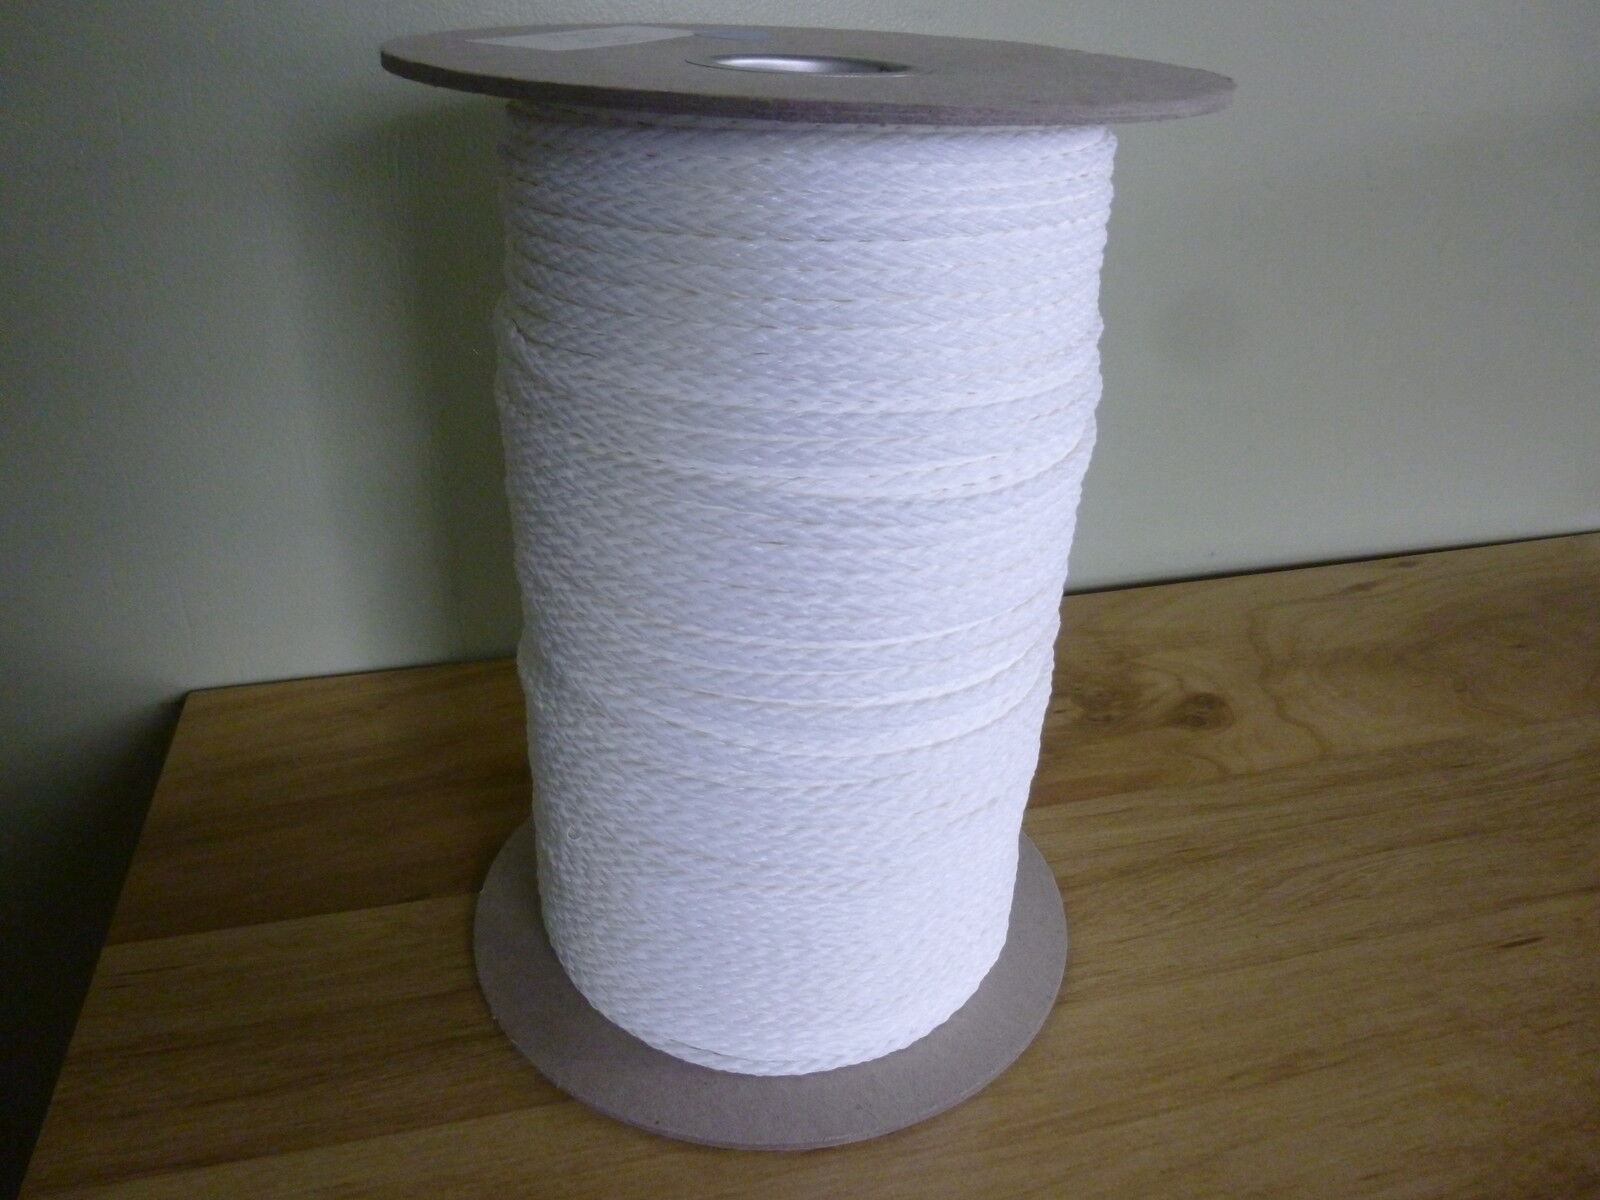 3 16  x 800 ft. Spool of Hollow Braid Polyethylene Rope. White. Made in USA.